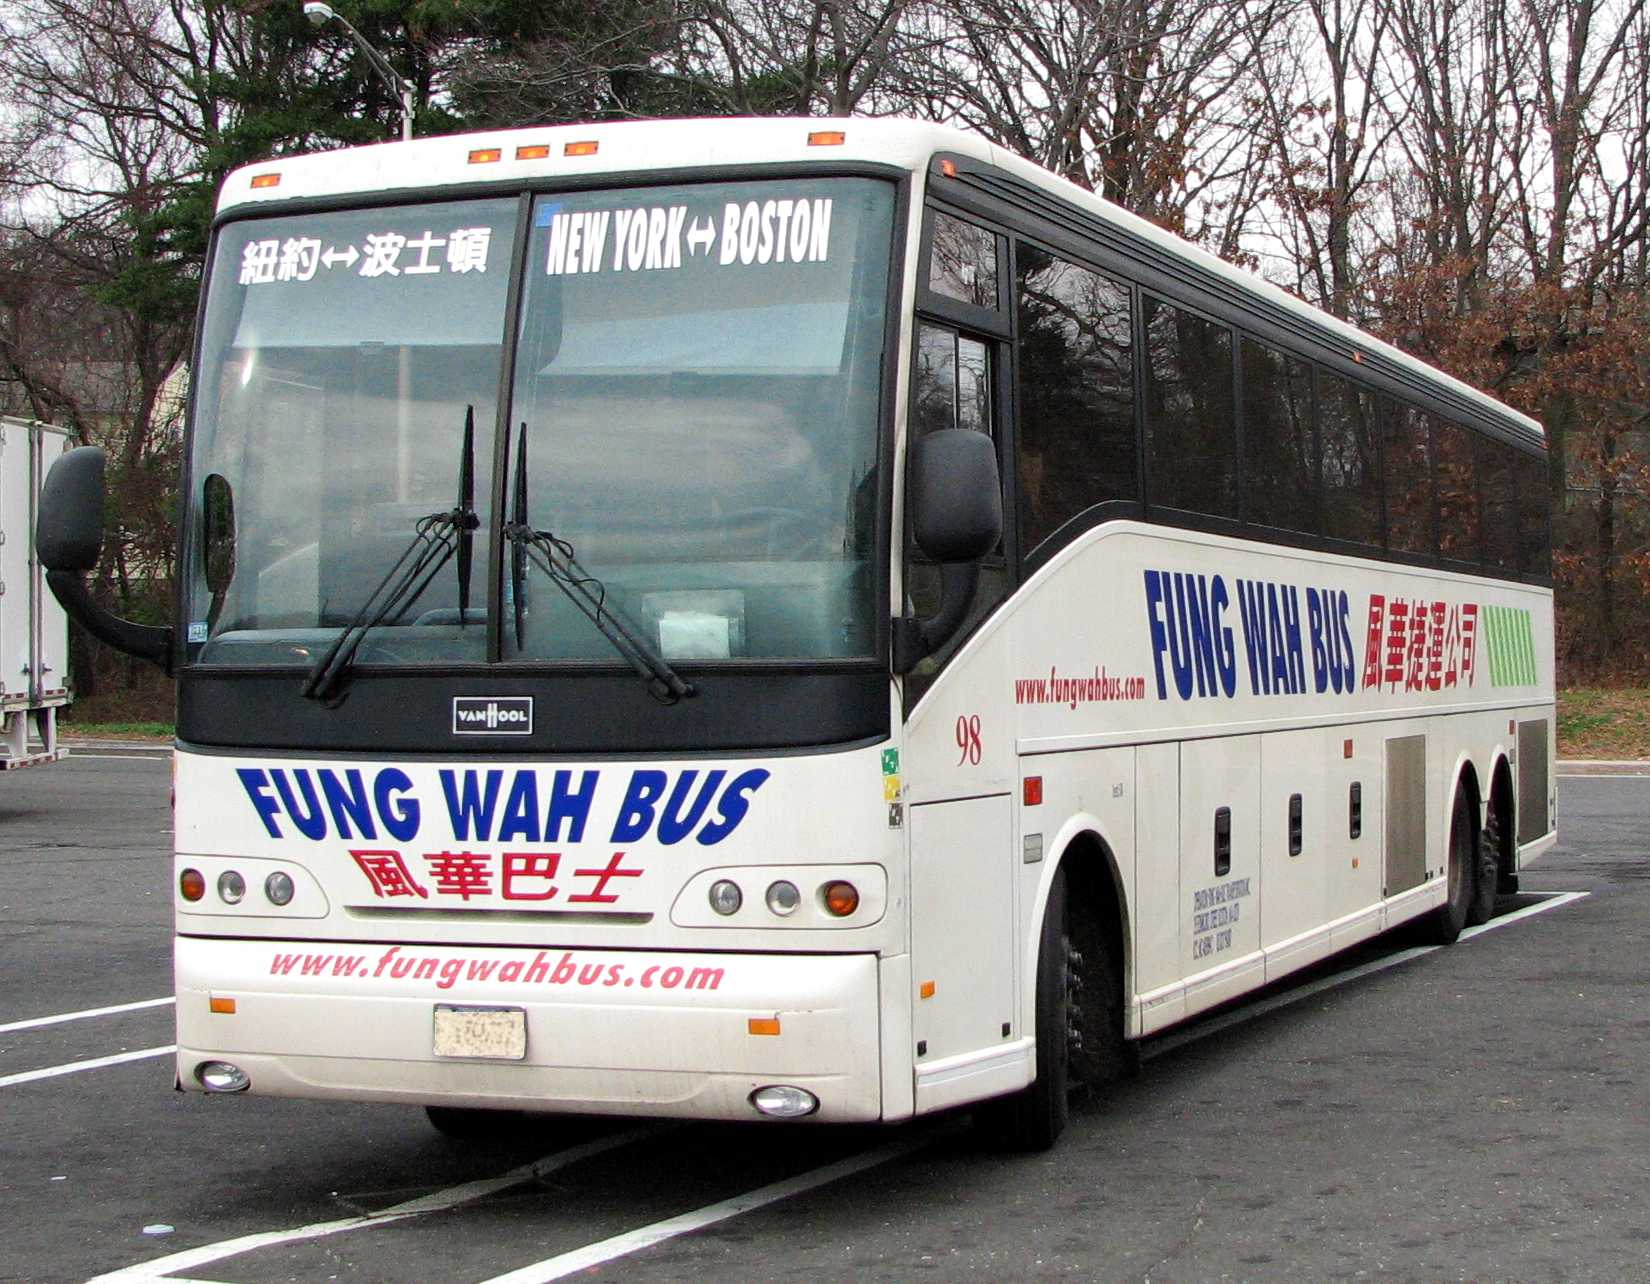 http://upload.wikimedia.org/wikipedia/commons/4/45/Fung_wah_bus_ny-bos.jpg